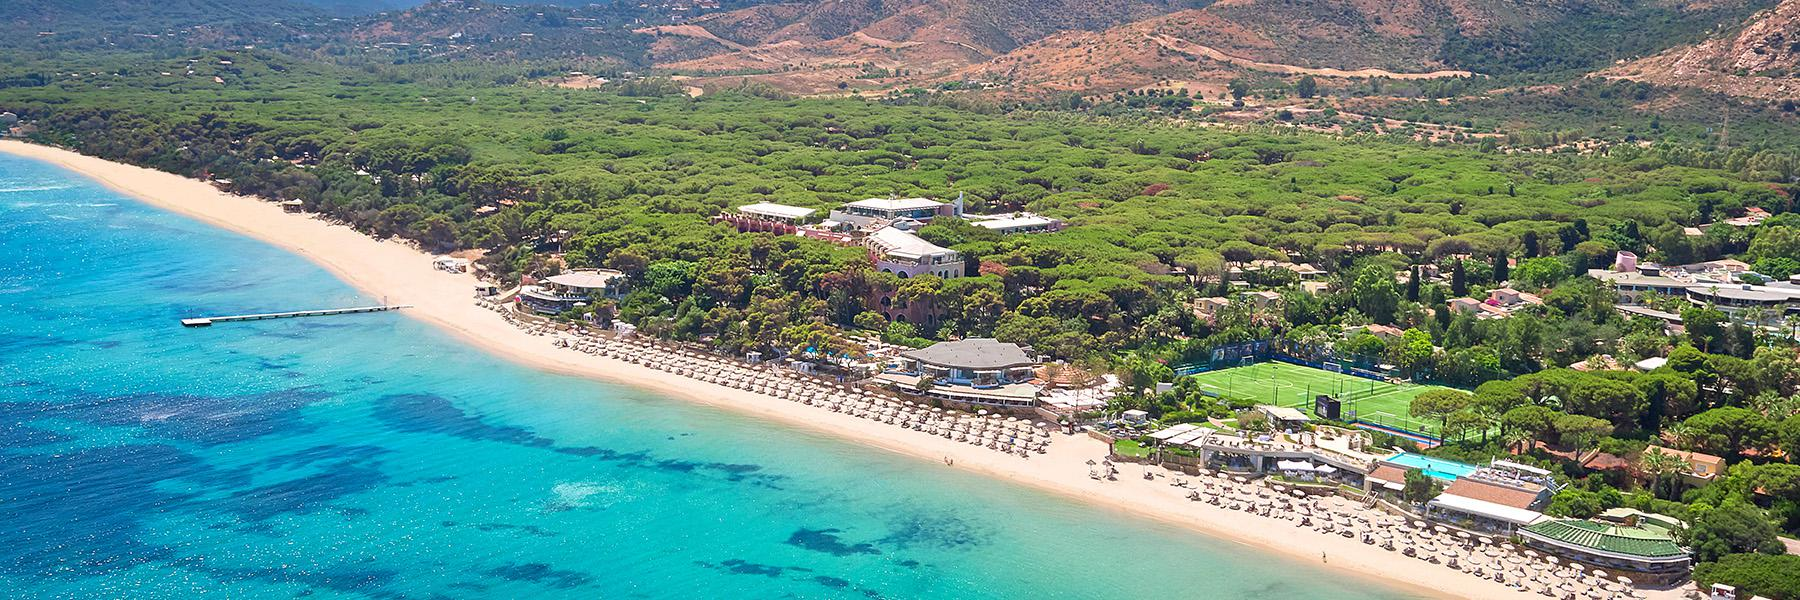 Hotels and at ennis court are surrounded by the beach and Turquoise Mediterranean Sea and small forests and parks  in Santa Mareritha di Pula in Sardinia